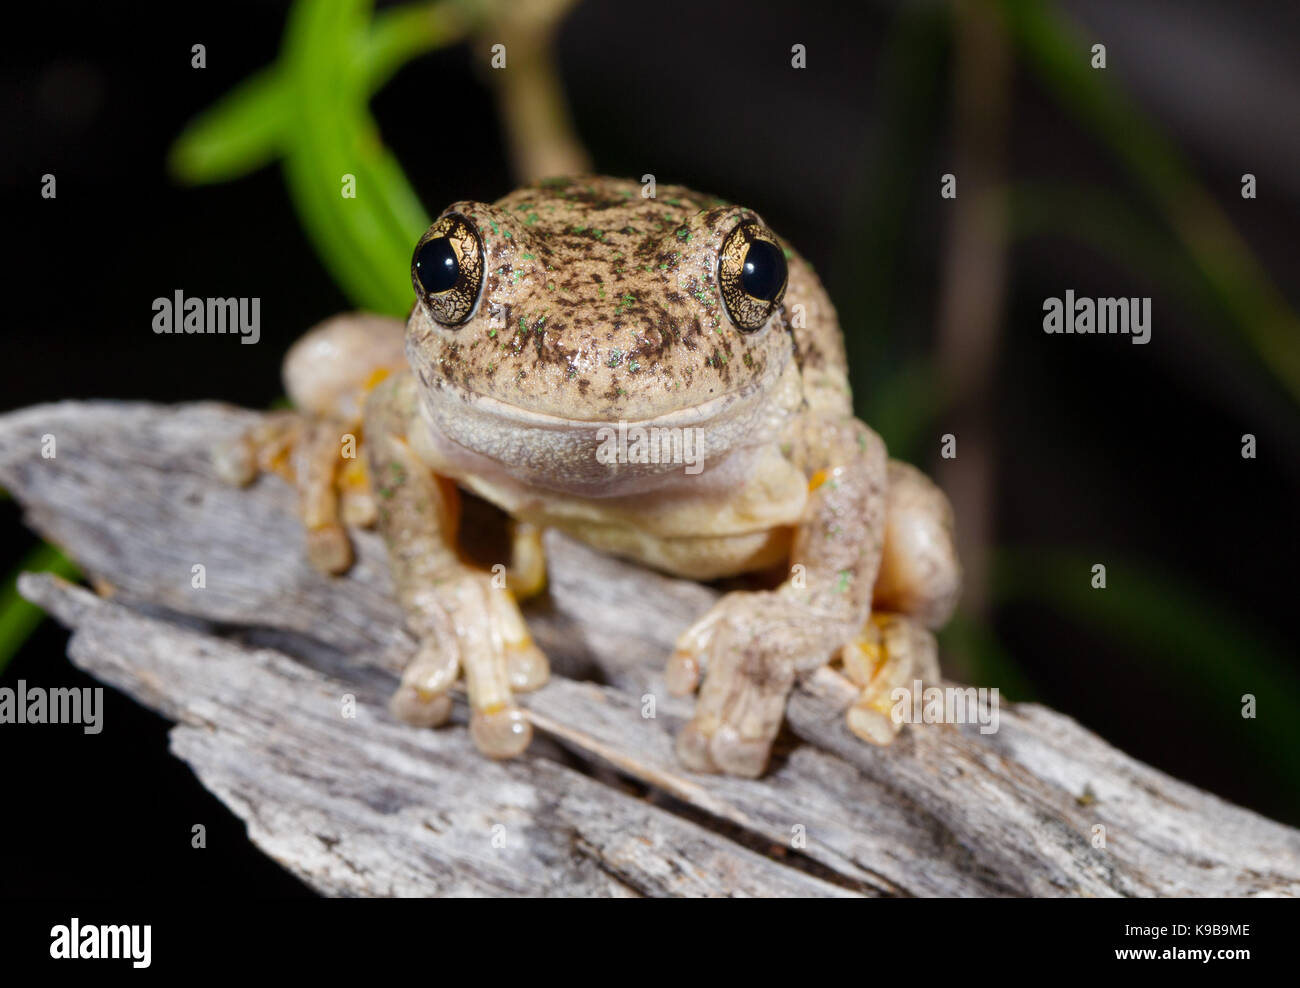 Peron's Tree Frog (Litoria peronii), also known as Emerald-spotted Tree Frog, Queensland, Australia Stock Photo